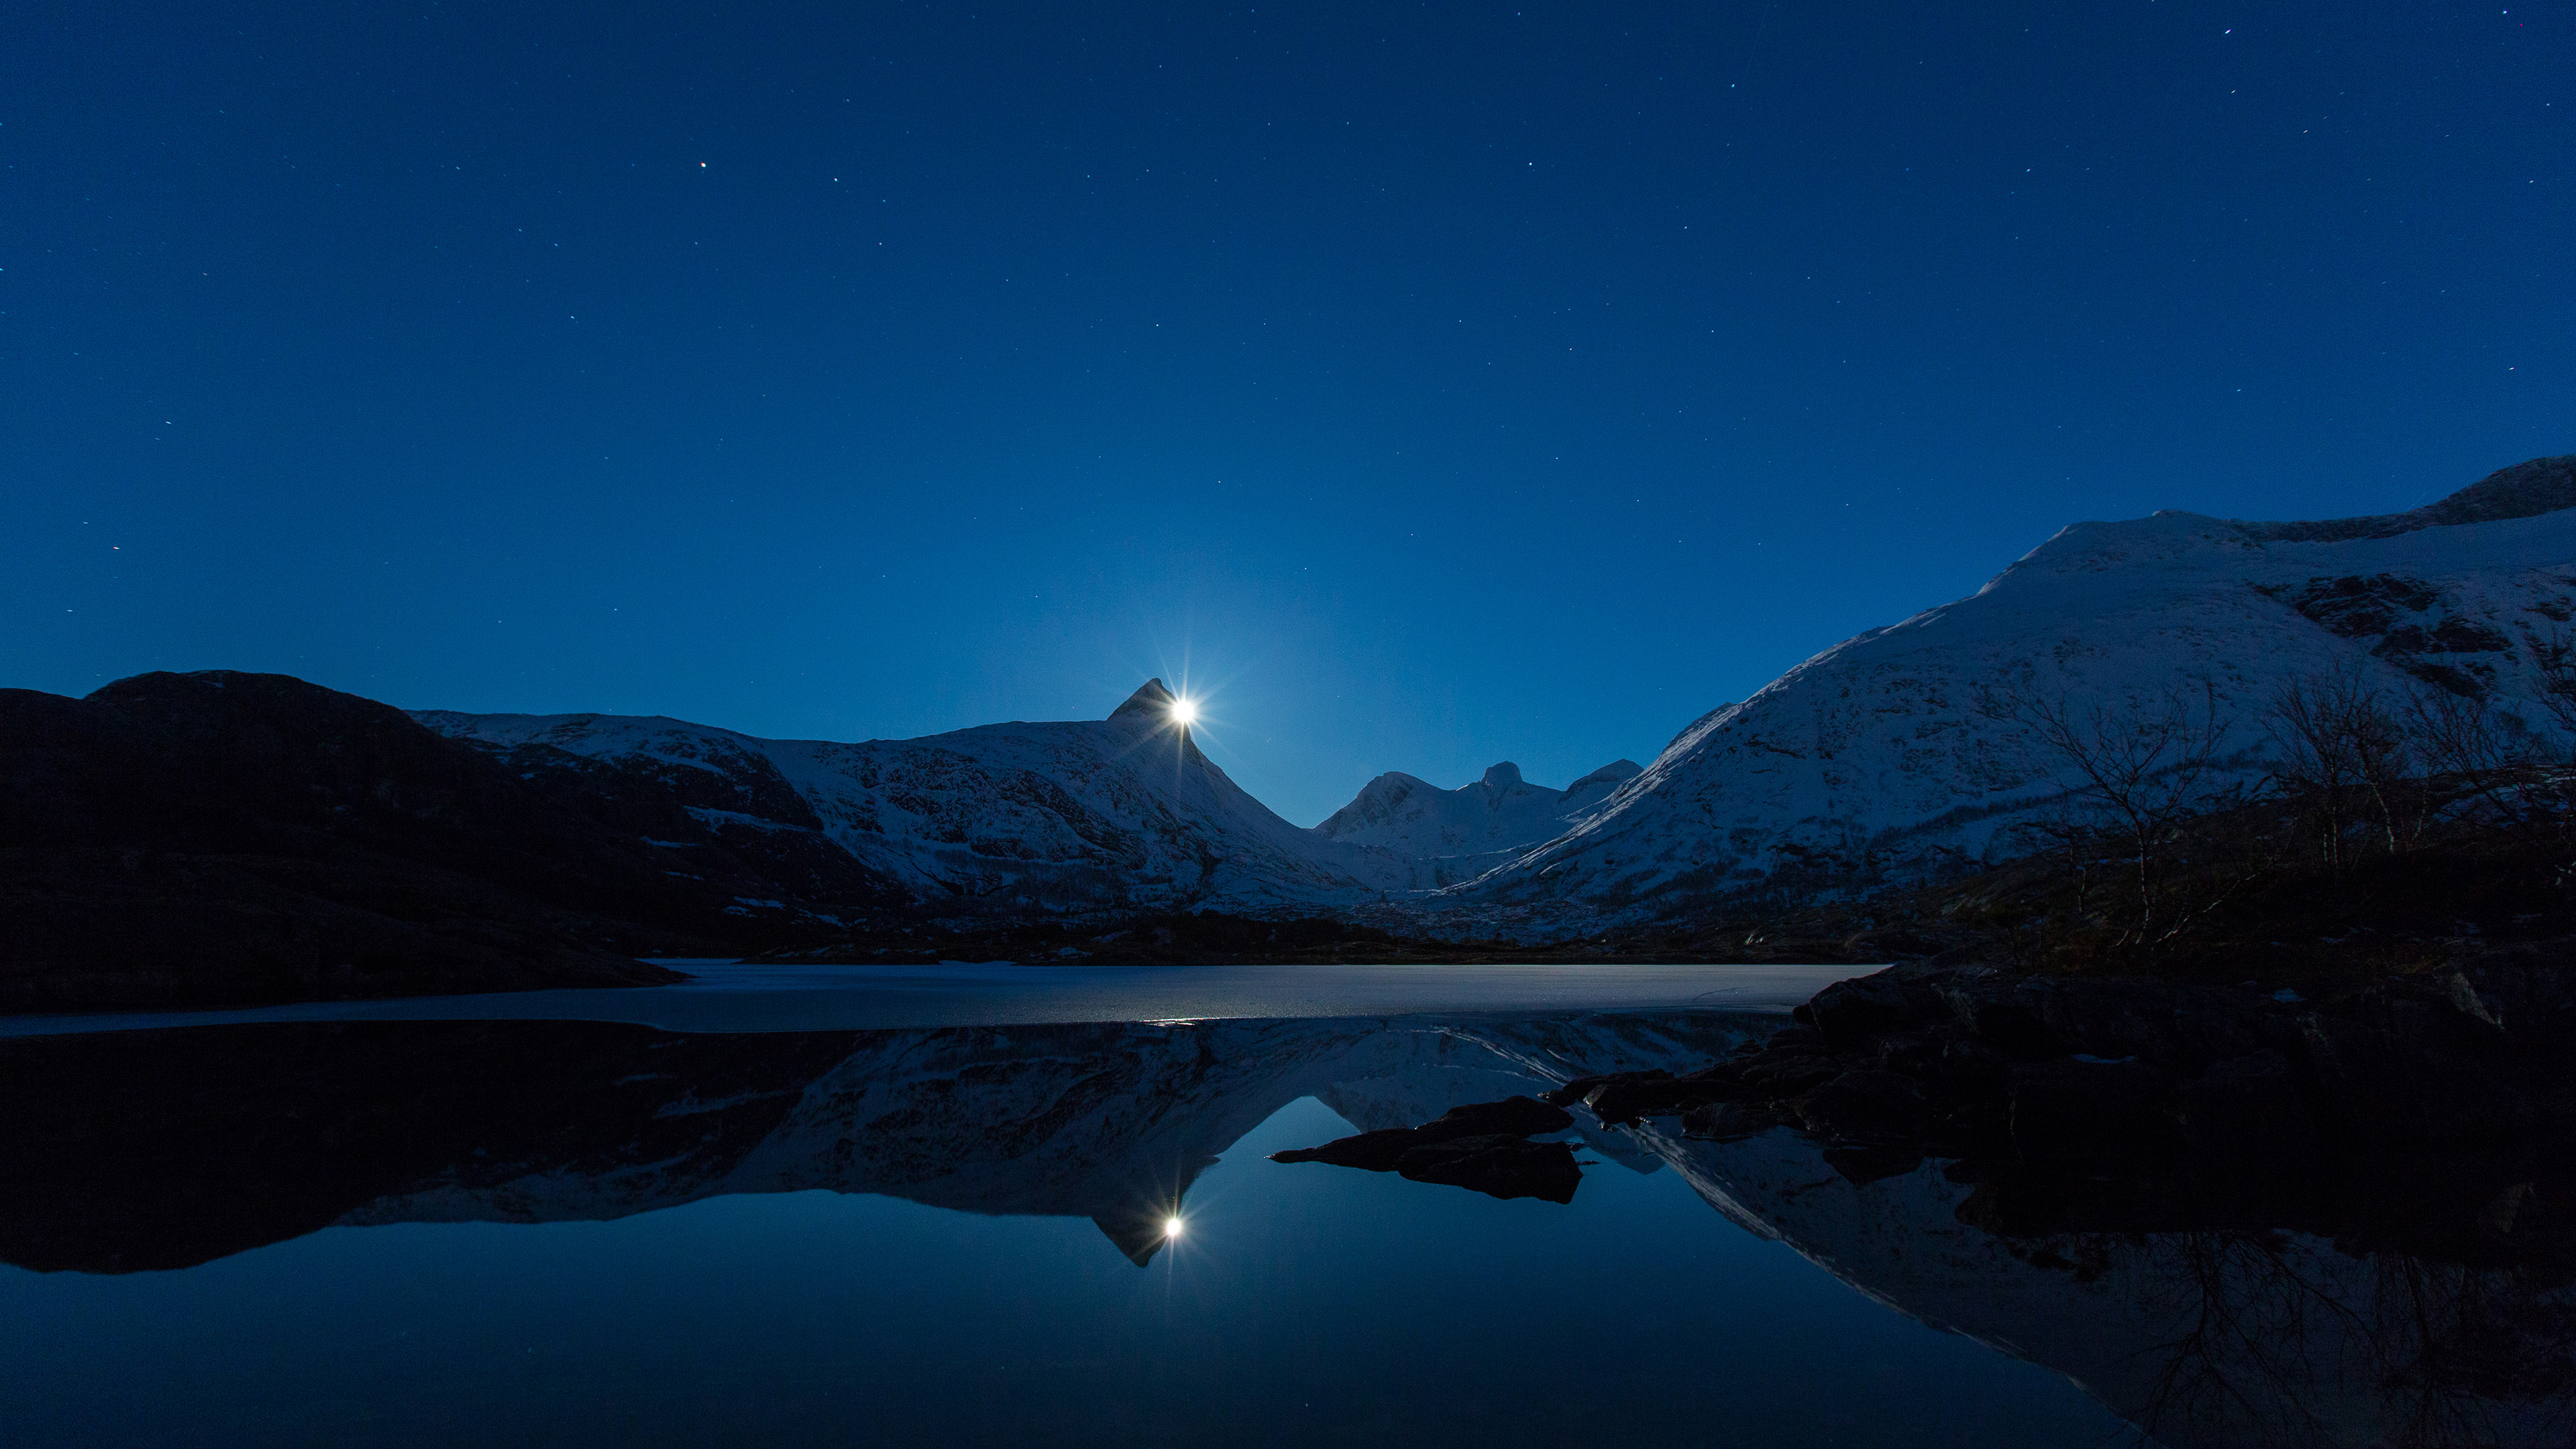 moon behind mountain 4k 1540132146 - Moon Behind Mountain 4k - reflection wallpapers, nature wallpapers, moon wallpapers, 4k-wallpapers